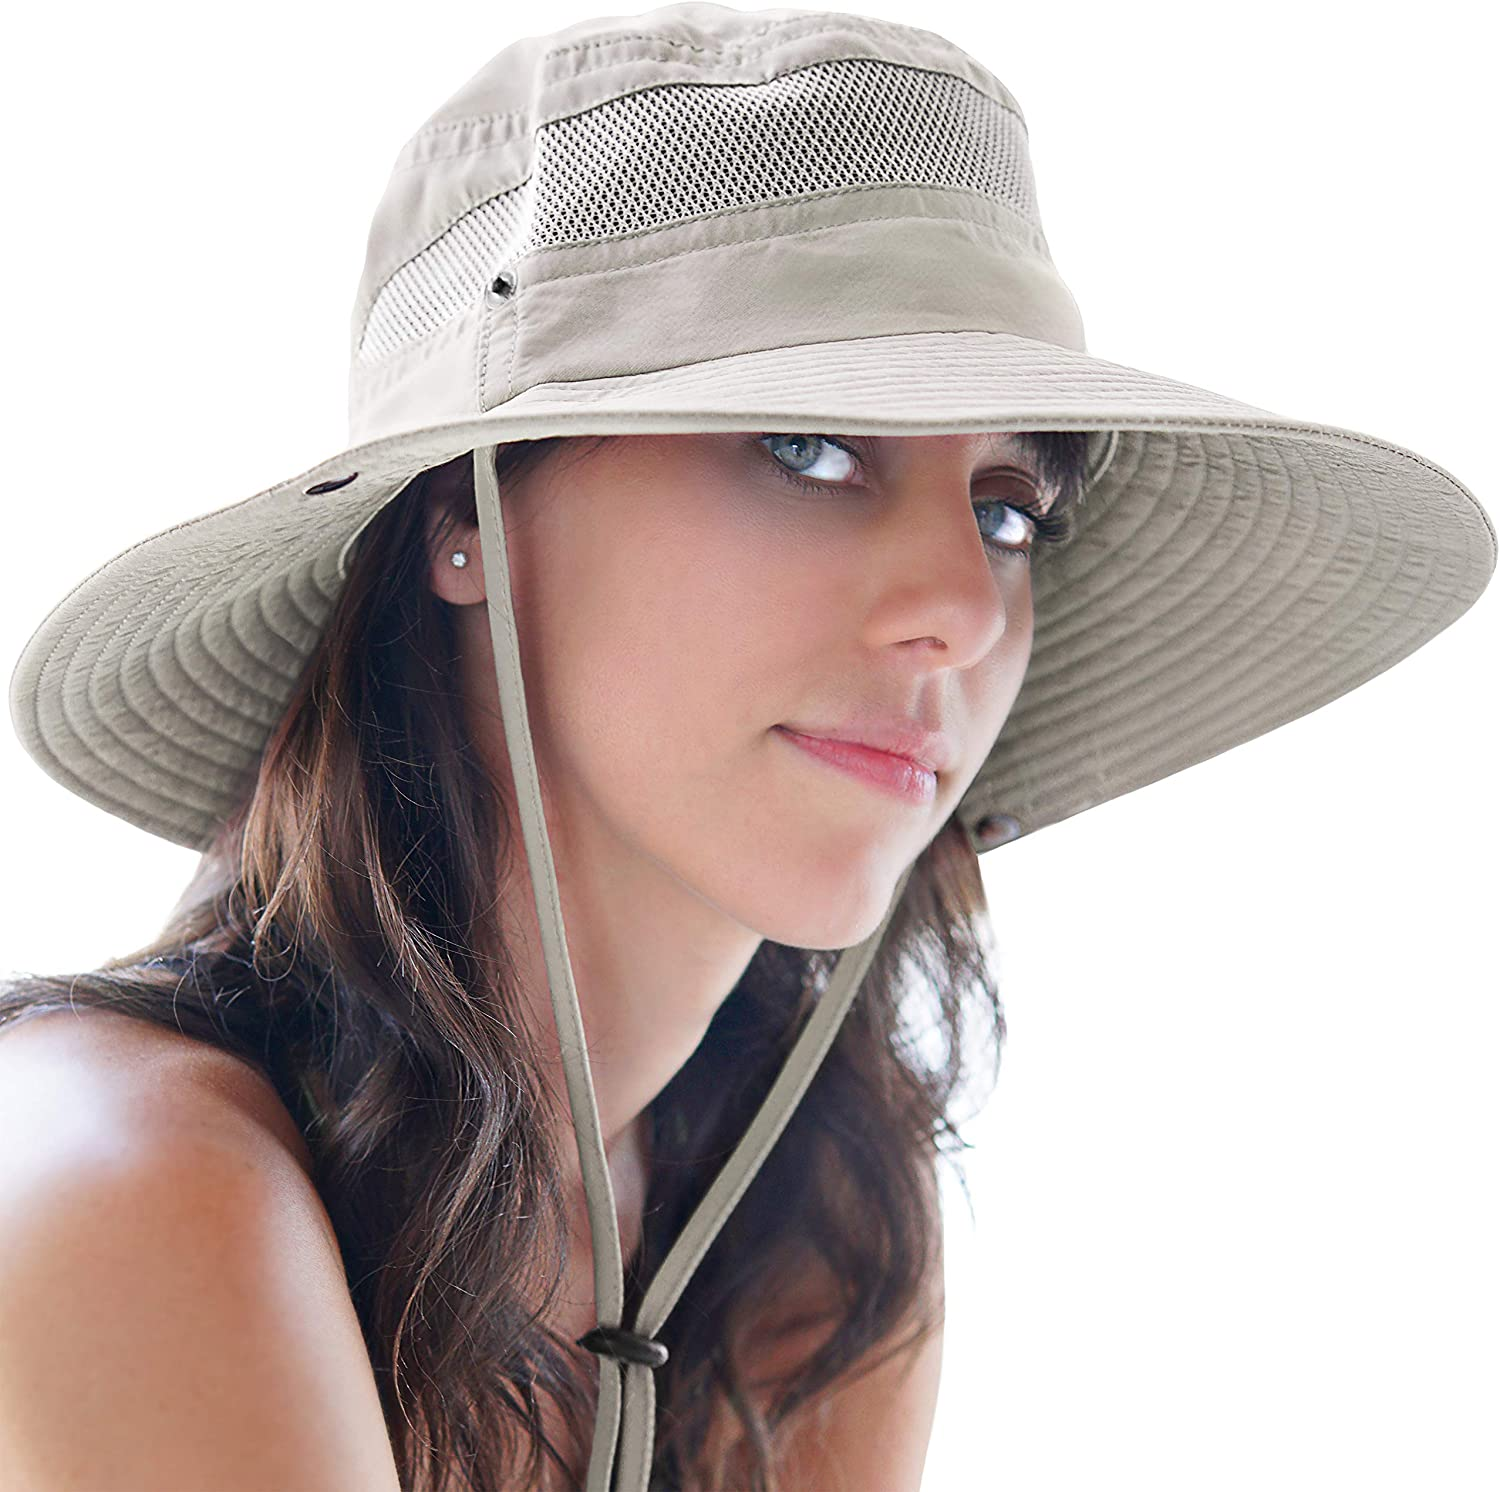 GearTOP Fishing Hat and Safari Cap with Sun Protection   Premium Hats for Men and Women